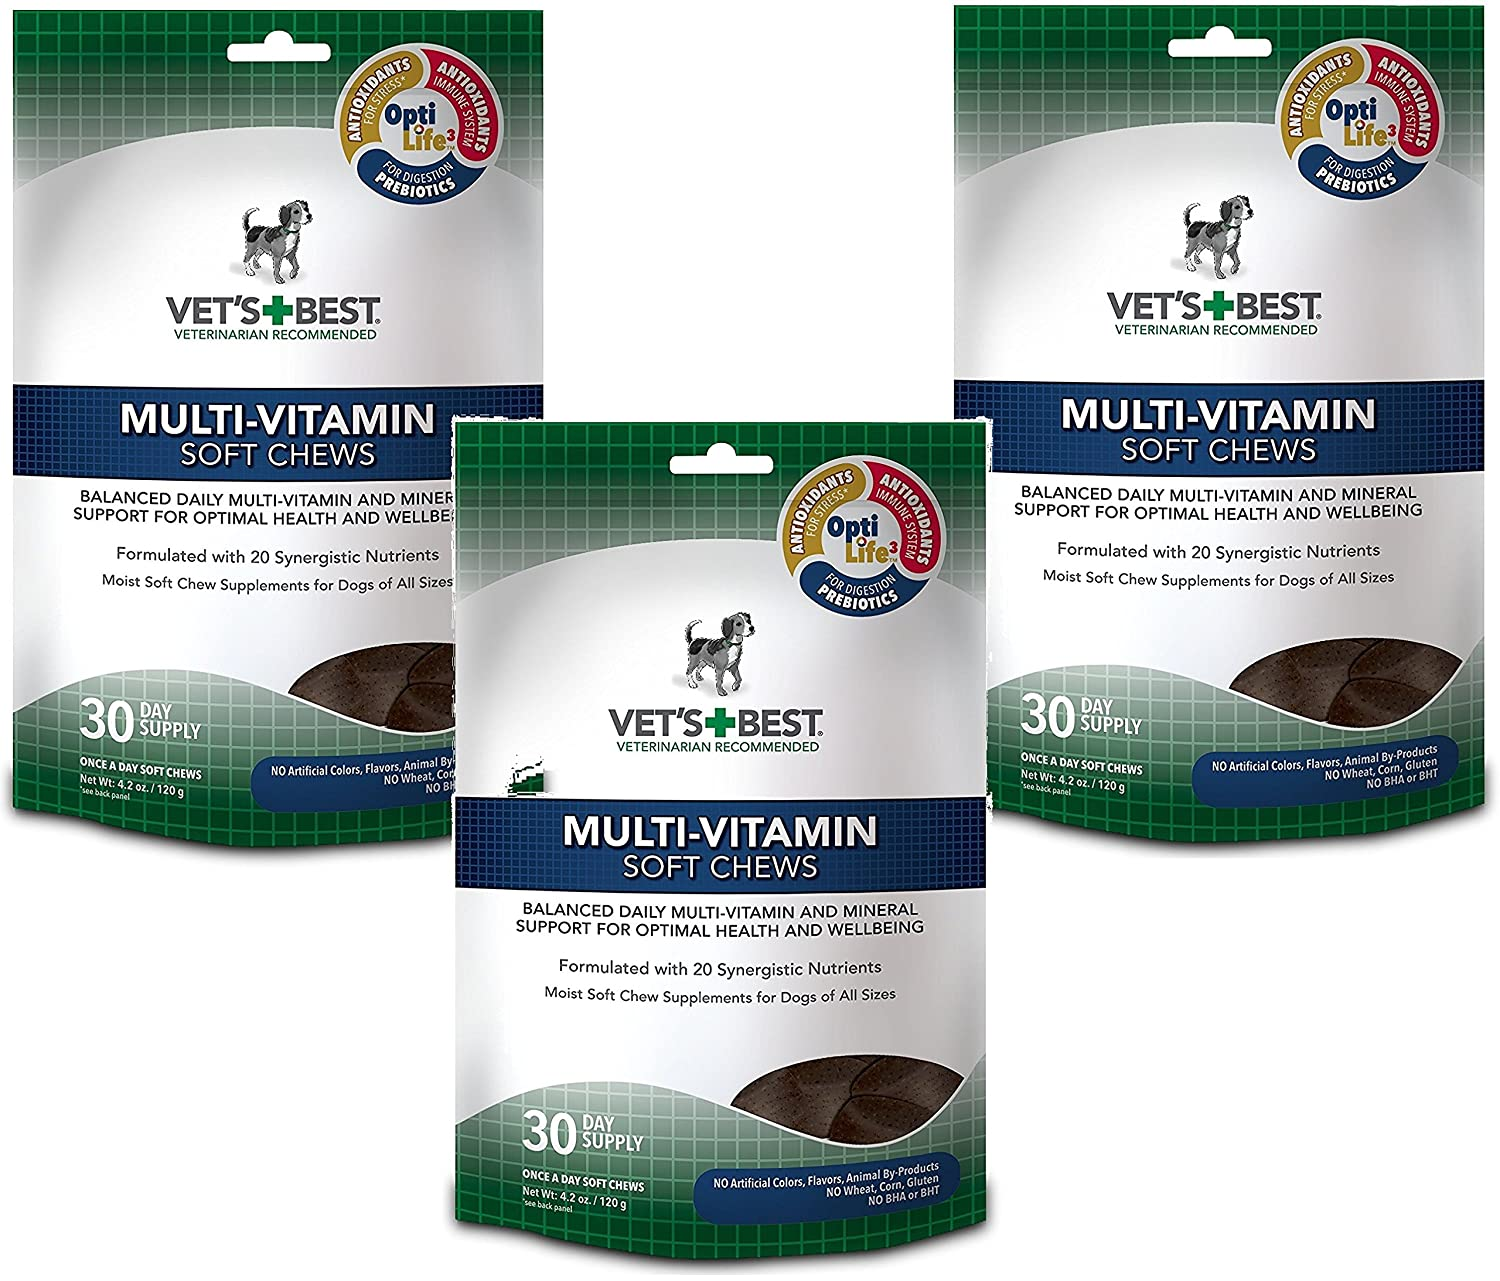 90 Day Supply (3 Pack) Vet's Best Multi-Vitamin Soft Chews Dog Supplements, Each a 30 Day Supply